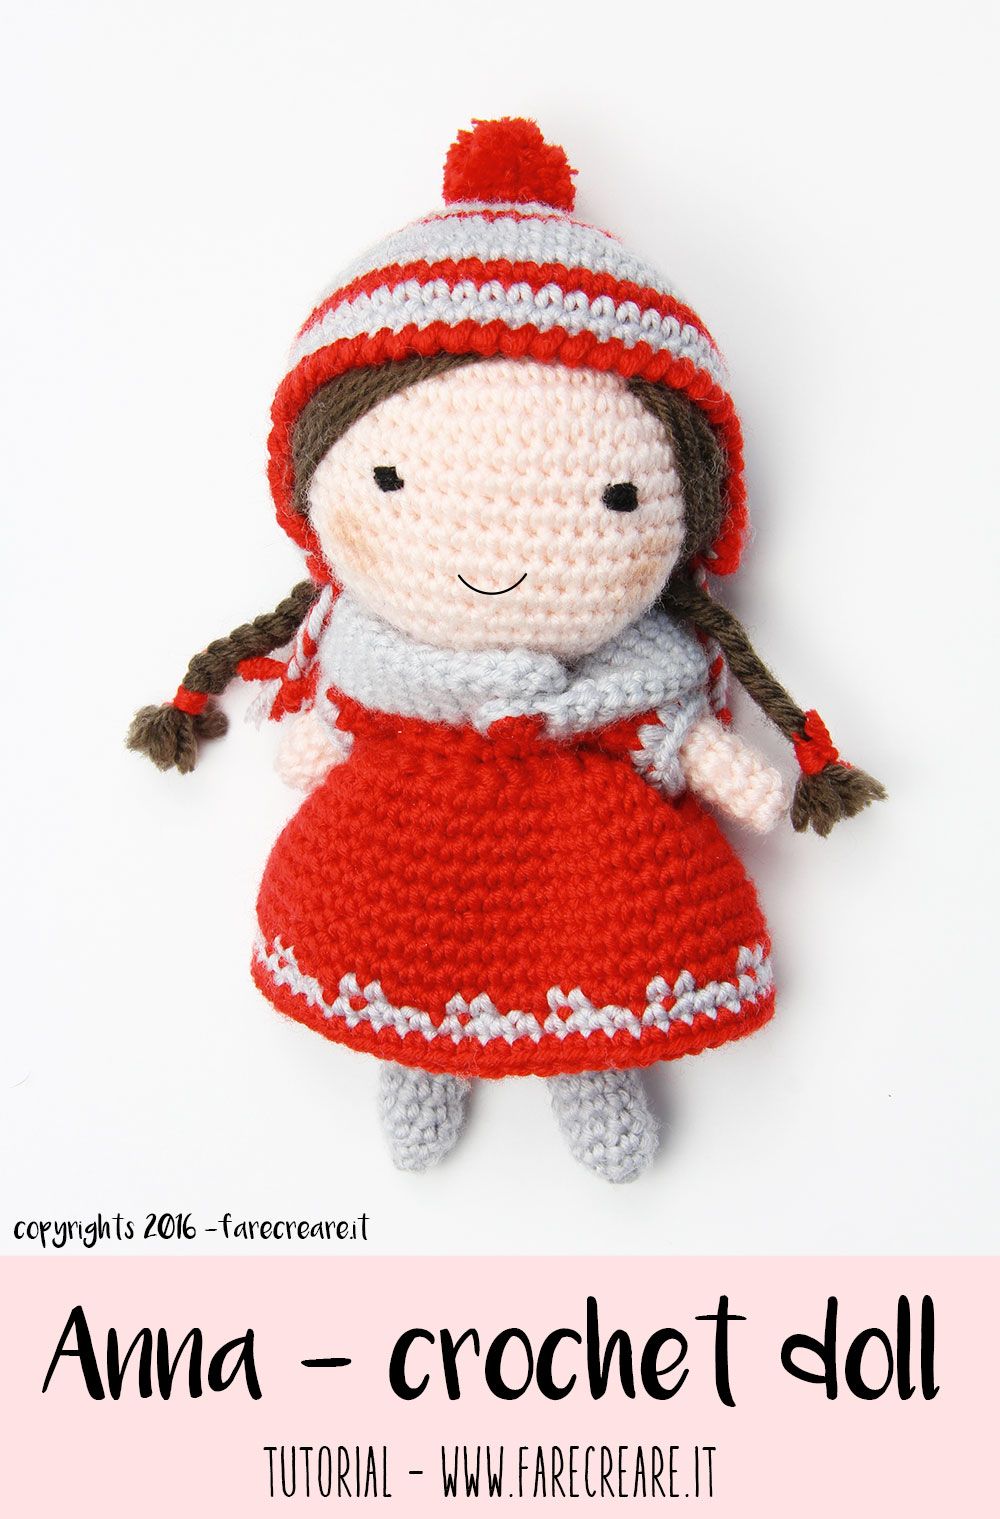 Cursos de amigurumi en capital federal